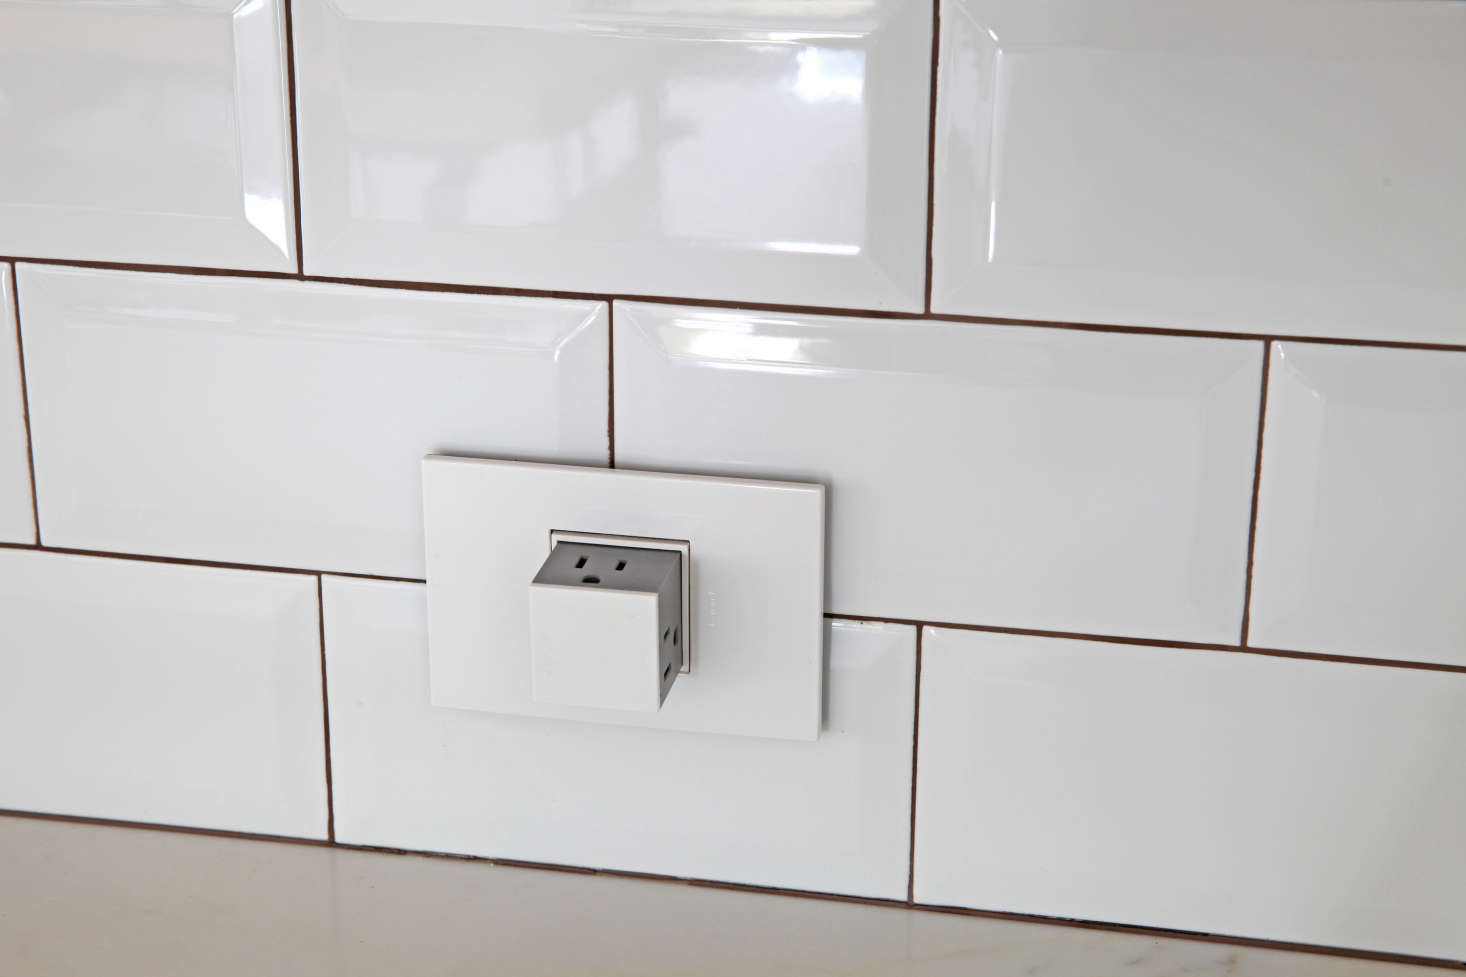 Pop-up outlets, used throughout the kitchen, disappear when not in use.